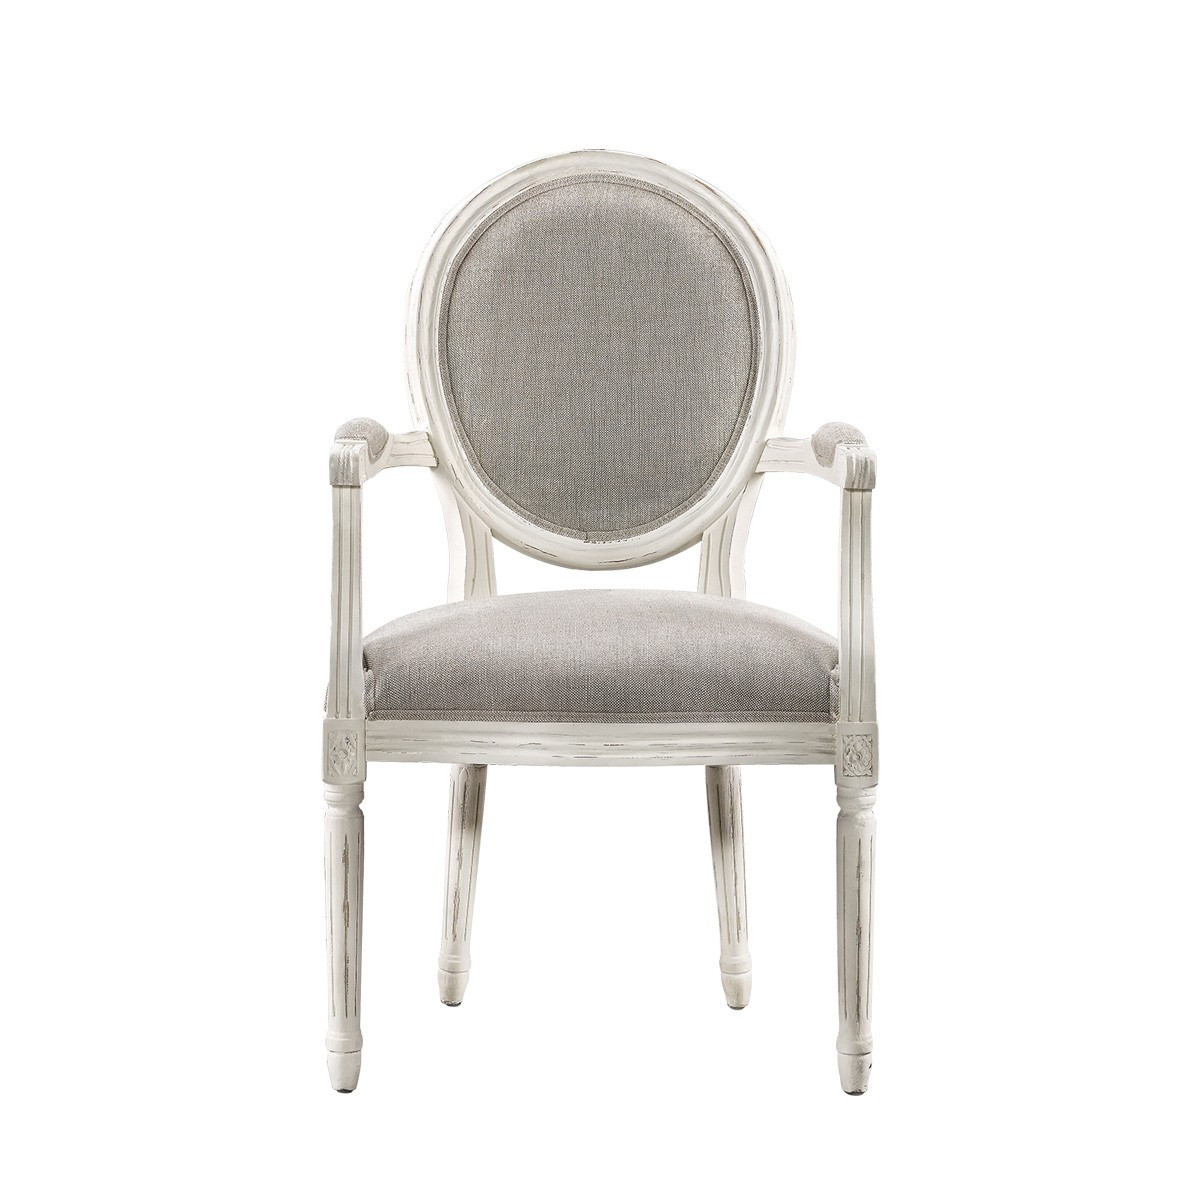 Стул Vintage Louis Round Vintage White Arm Chair